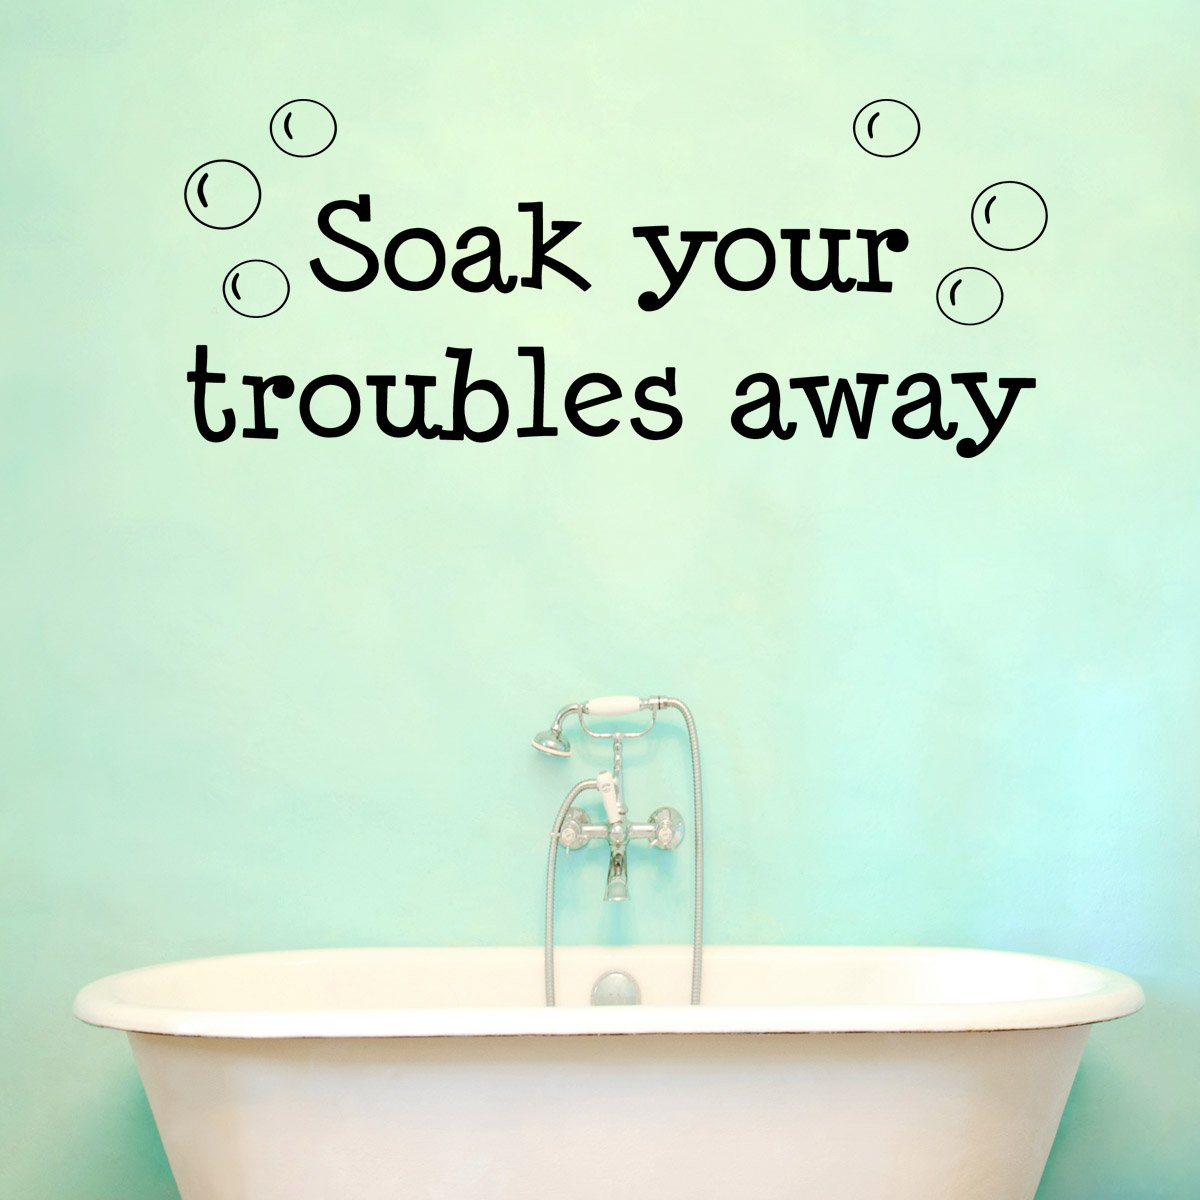 Soak your troubles away bathroom decal